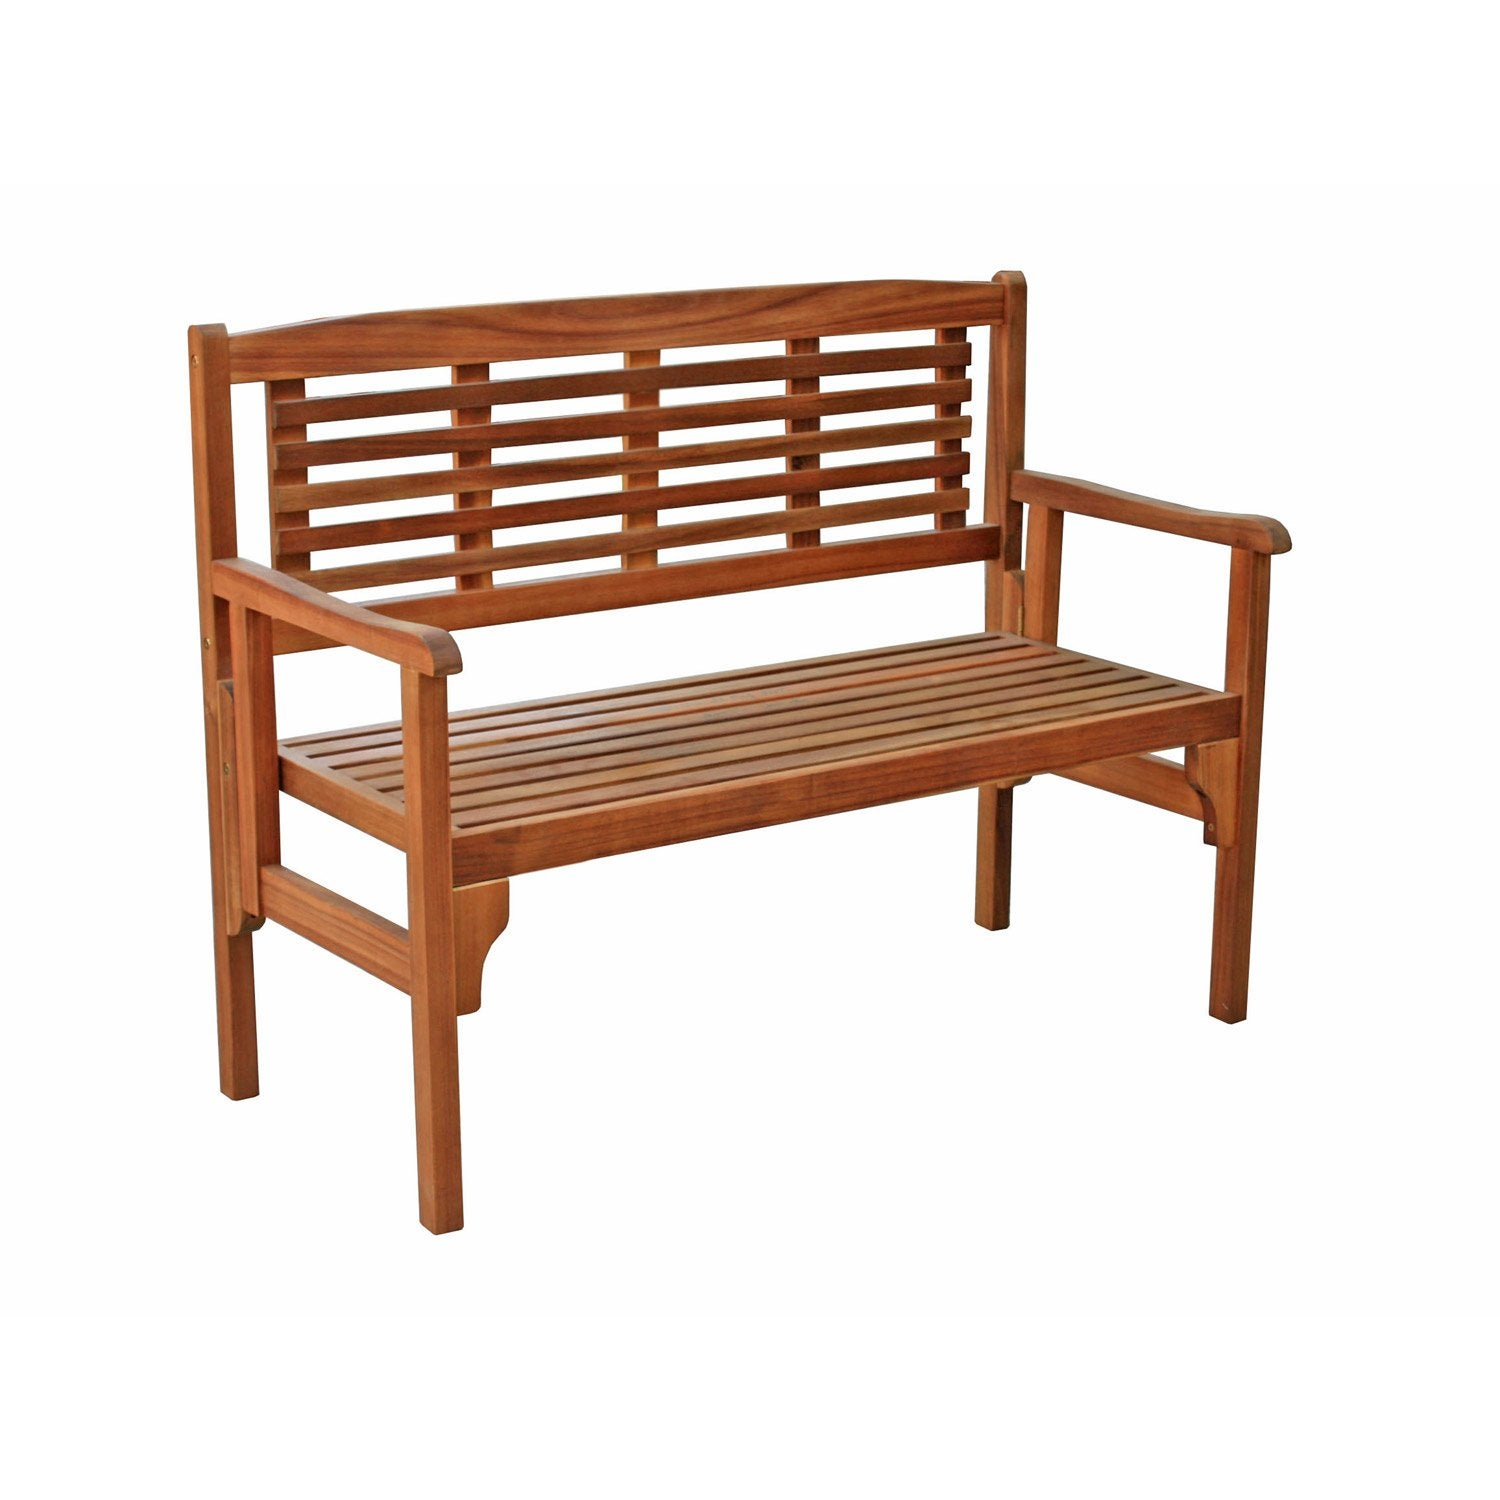 Banc 2 places de jardin en bois porto brun leroy merlin for Table exterieur 2 places